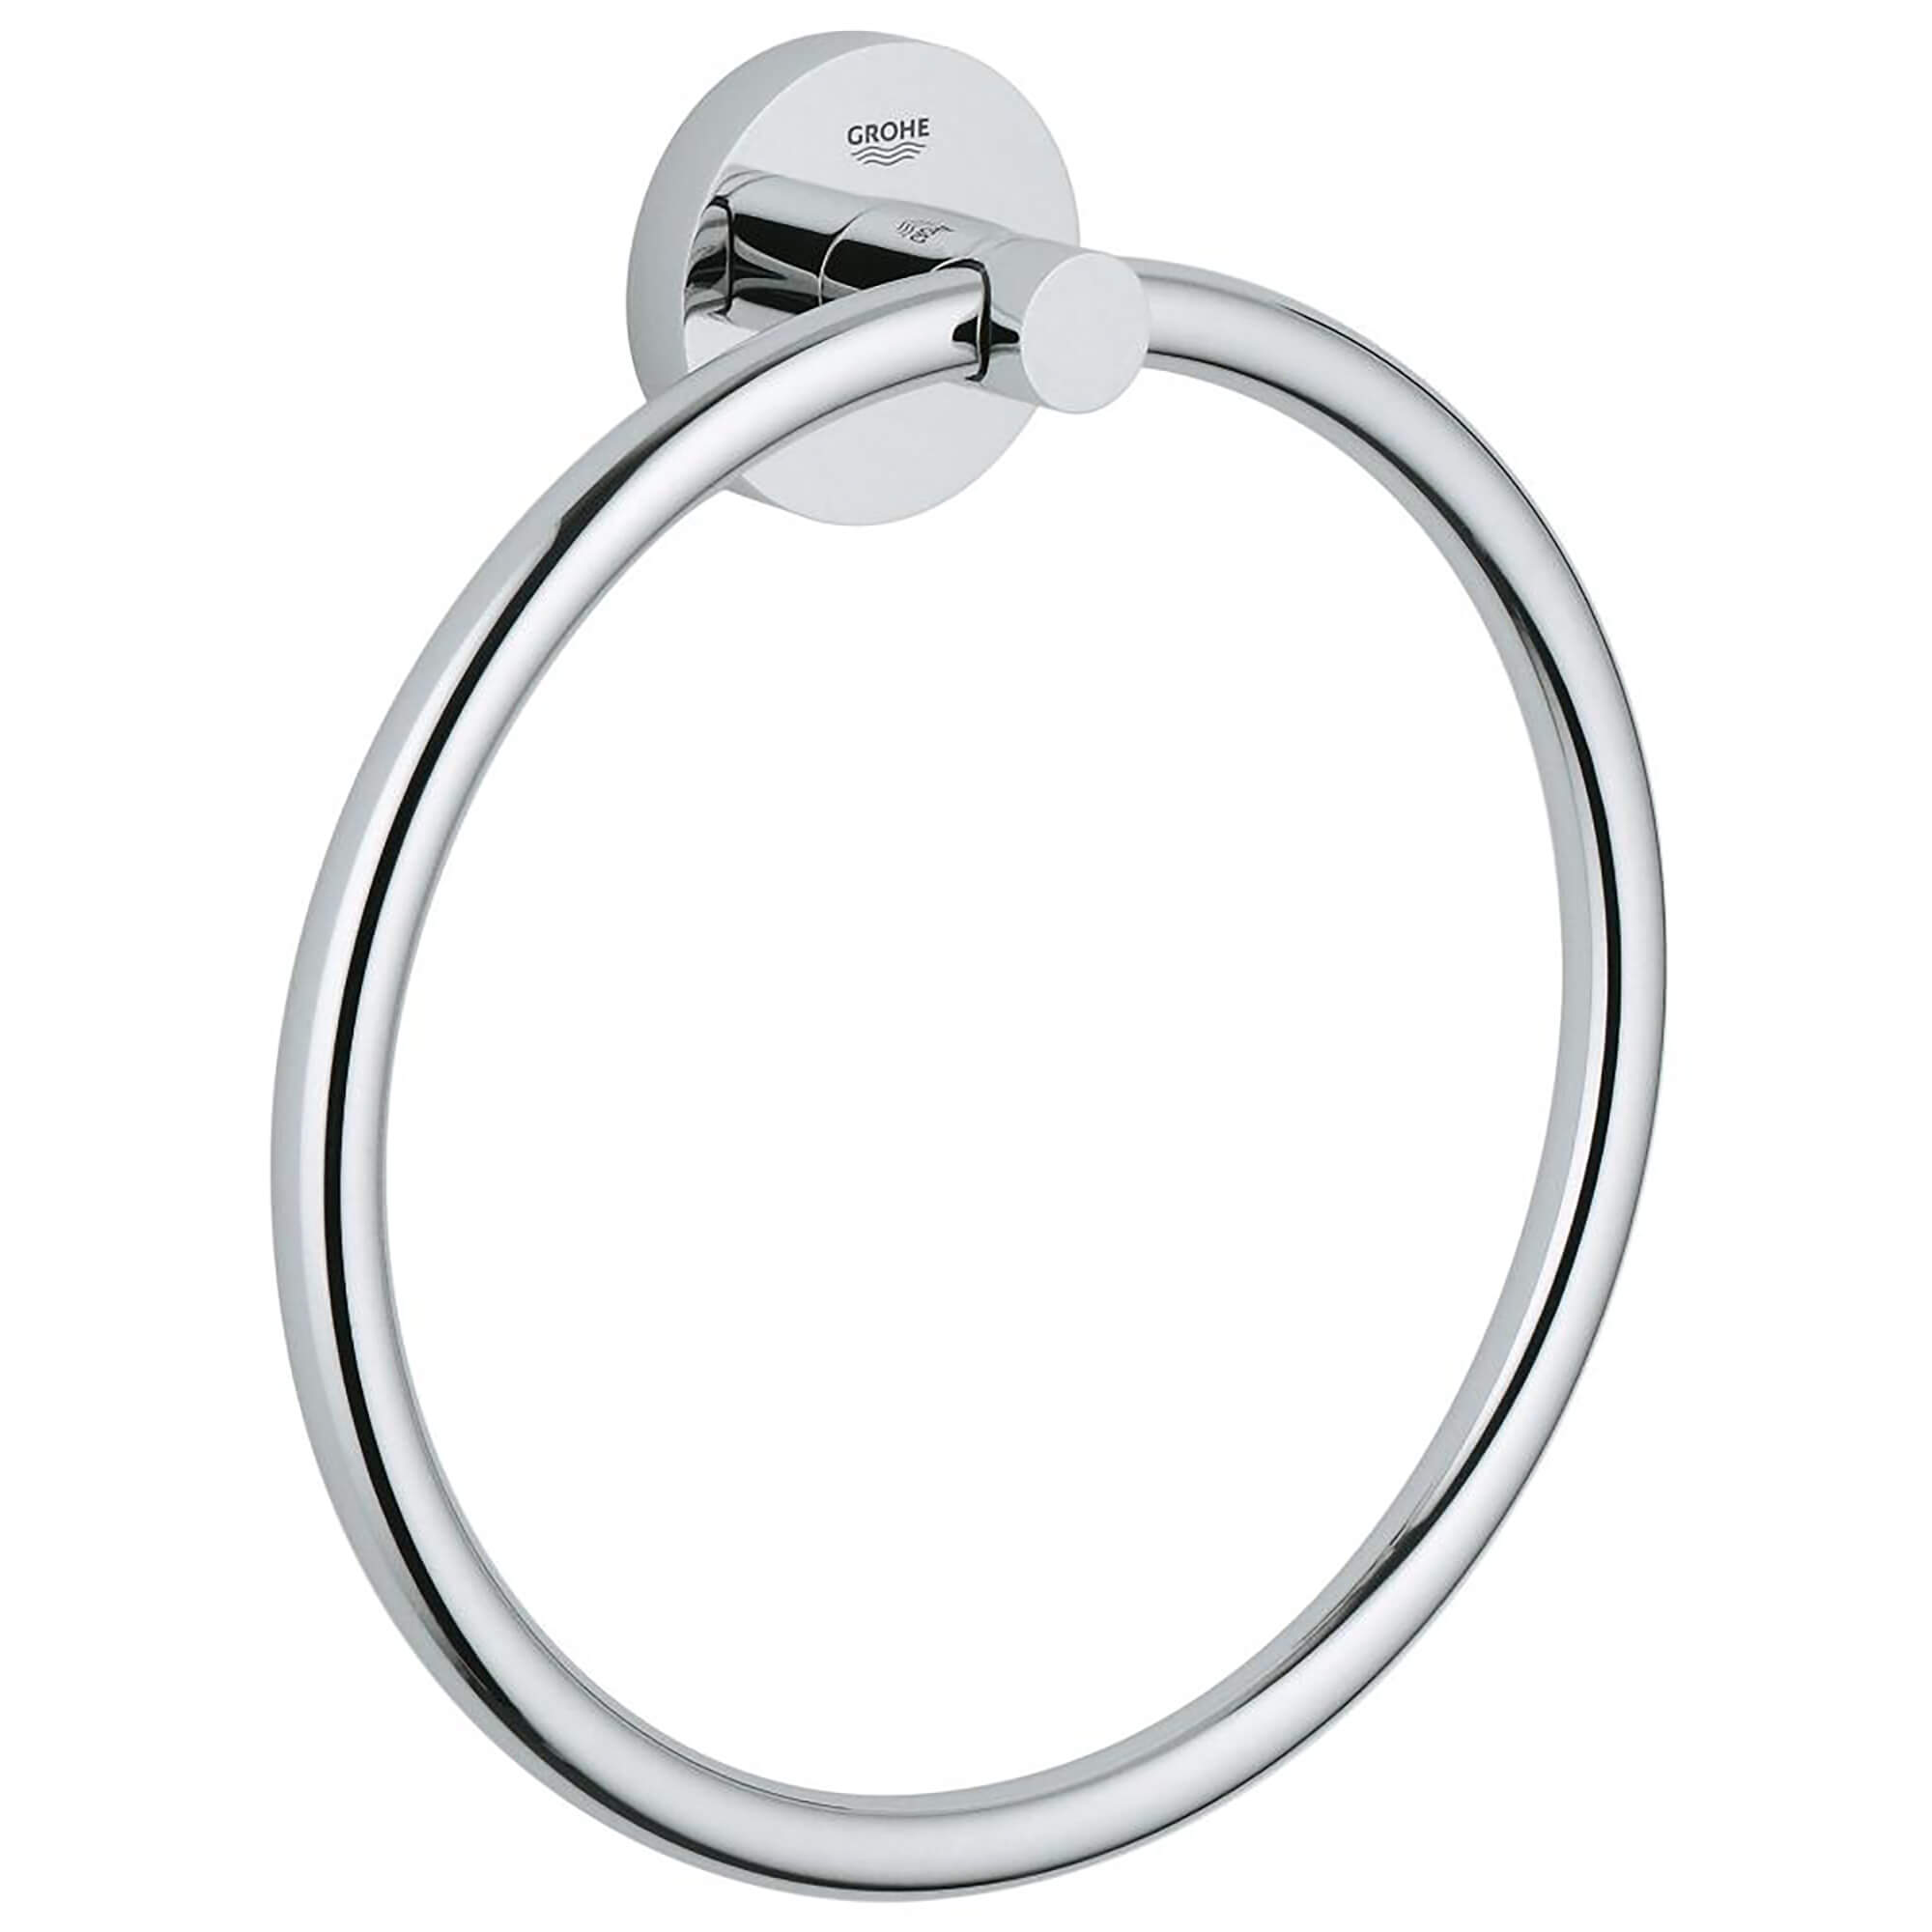 Essentials Towel Ring GROHE CHROME